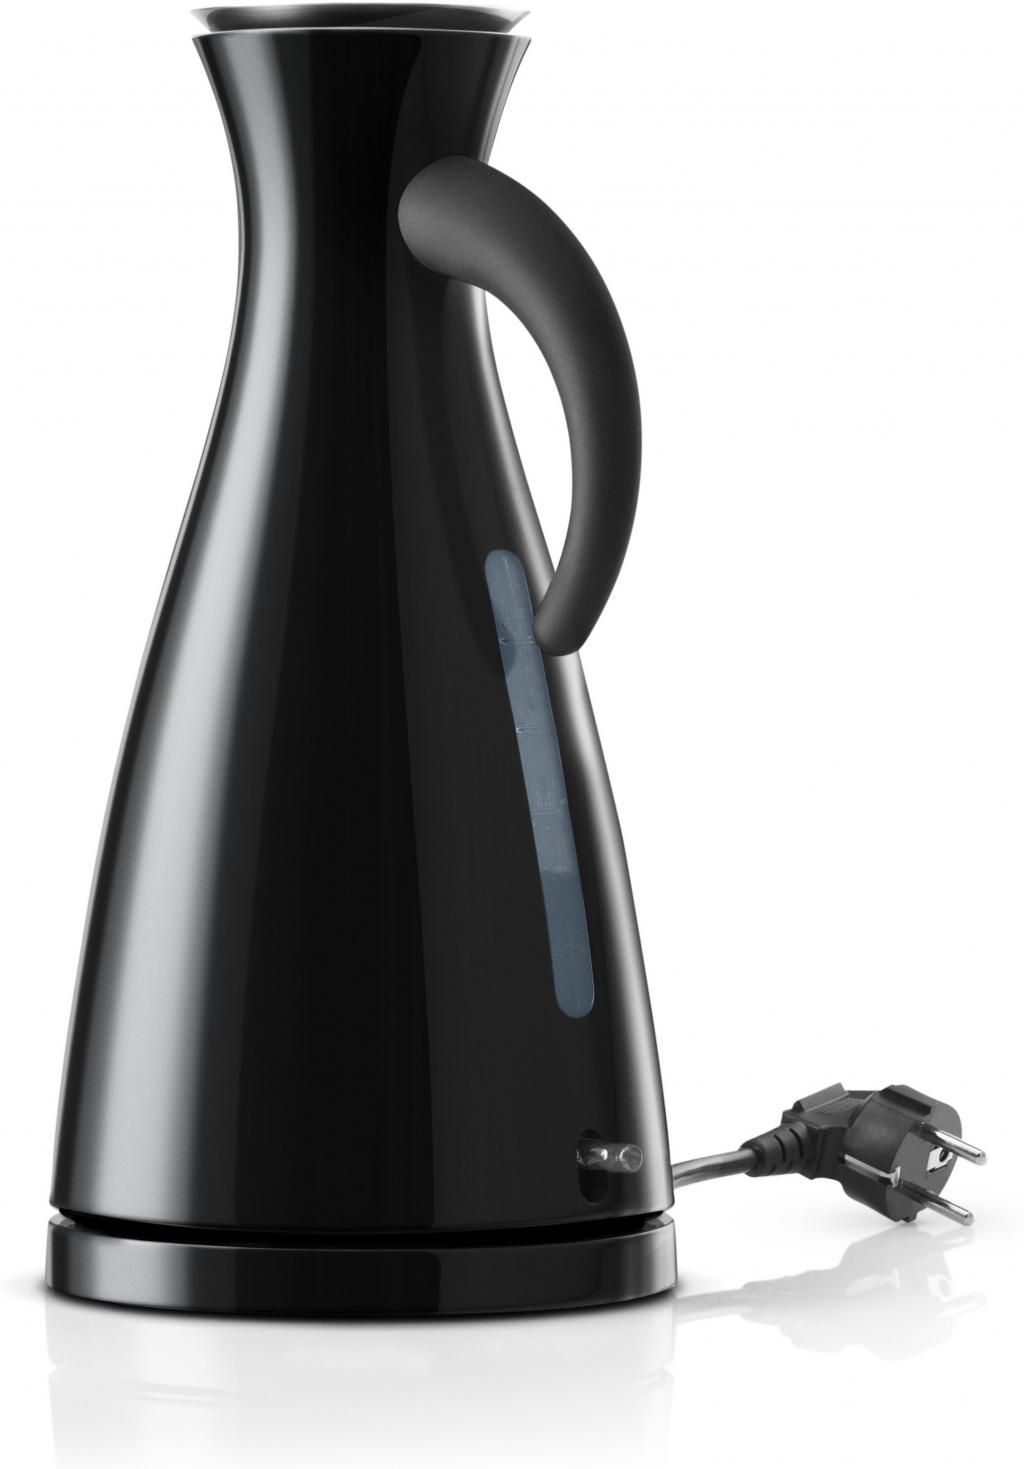 wasserkocher electric kettle 1 5 lt schwarz eva solo kaufen wohn und. Black Bedroom Furniture Sets. Home Design Ideas